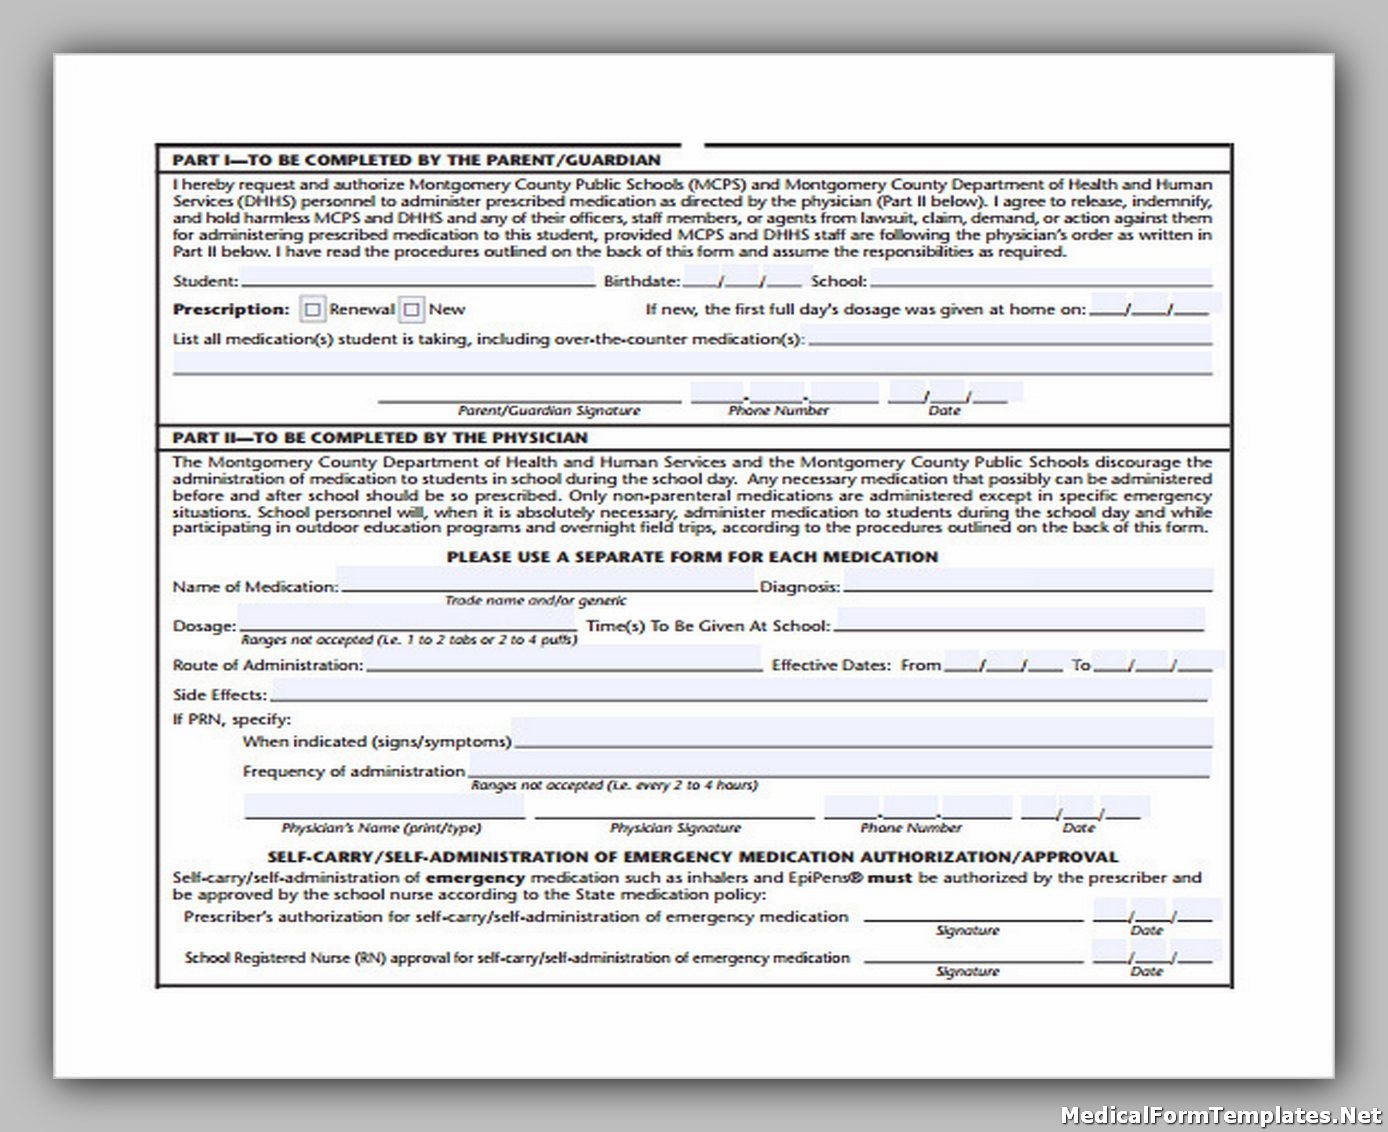 Sample of School Medical Form